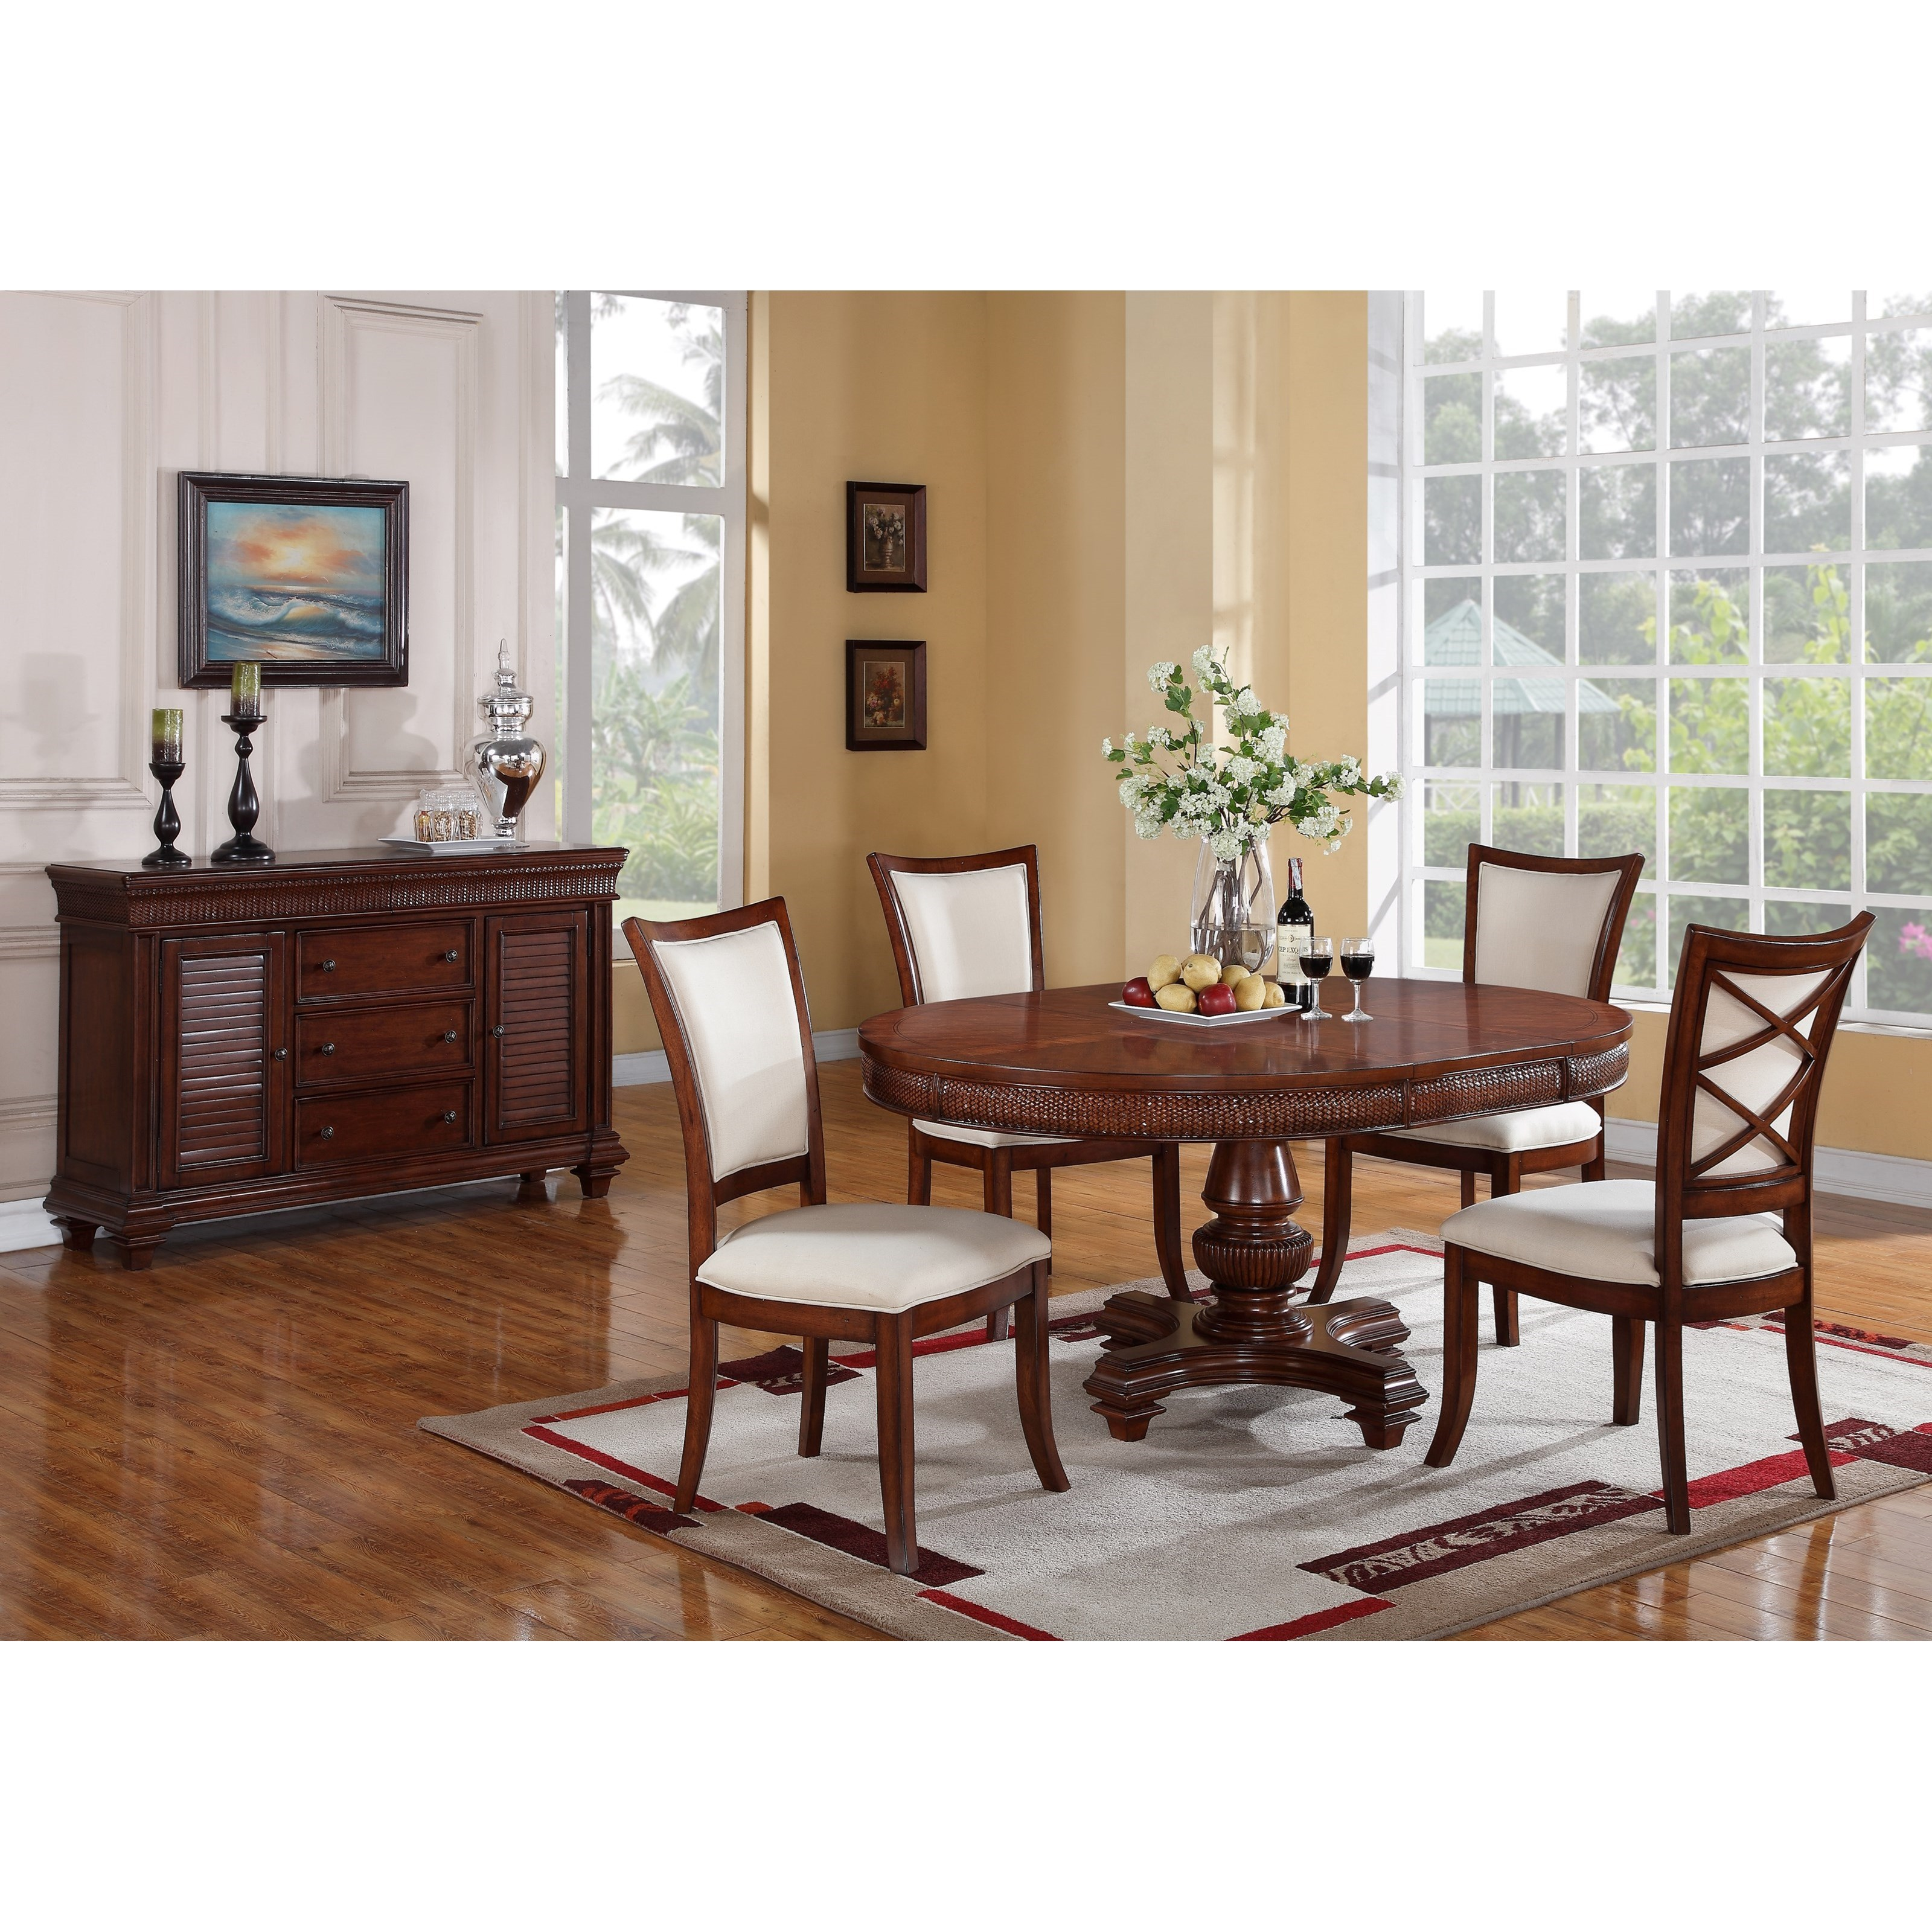 City Furniture Dining Room: Riverside Furniture Windward Bay Casual Dining Room Group